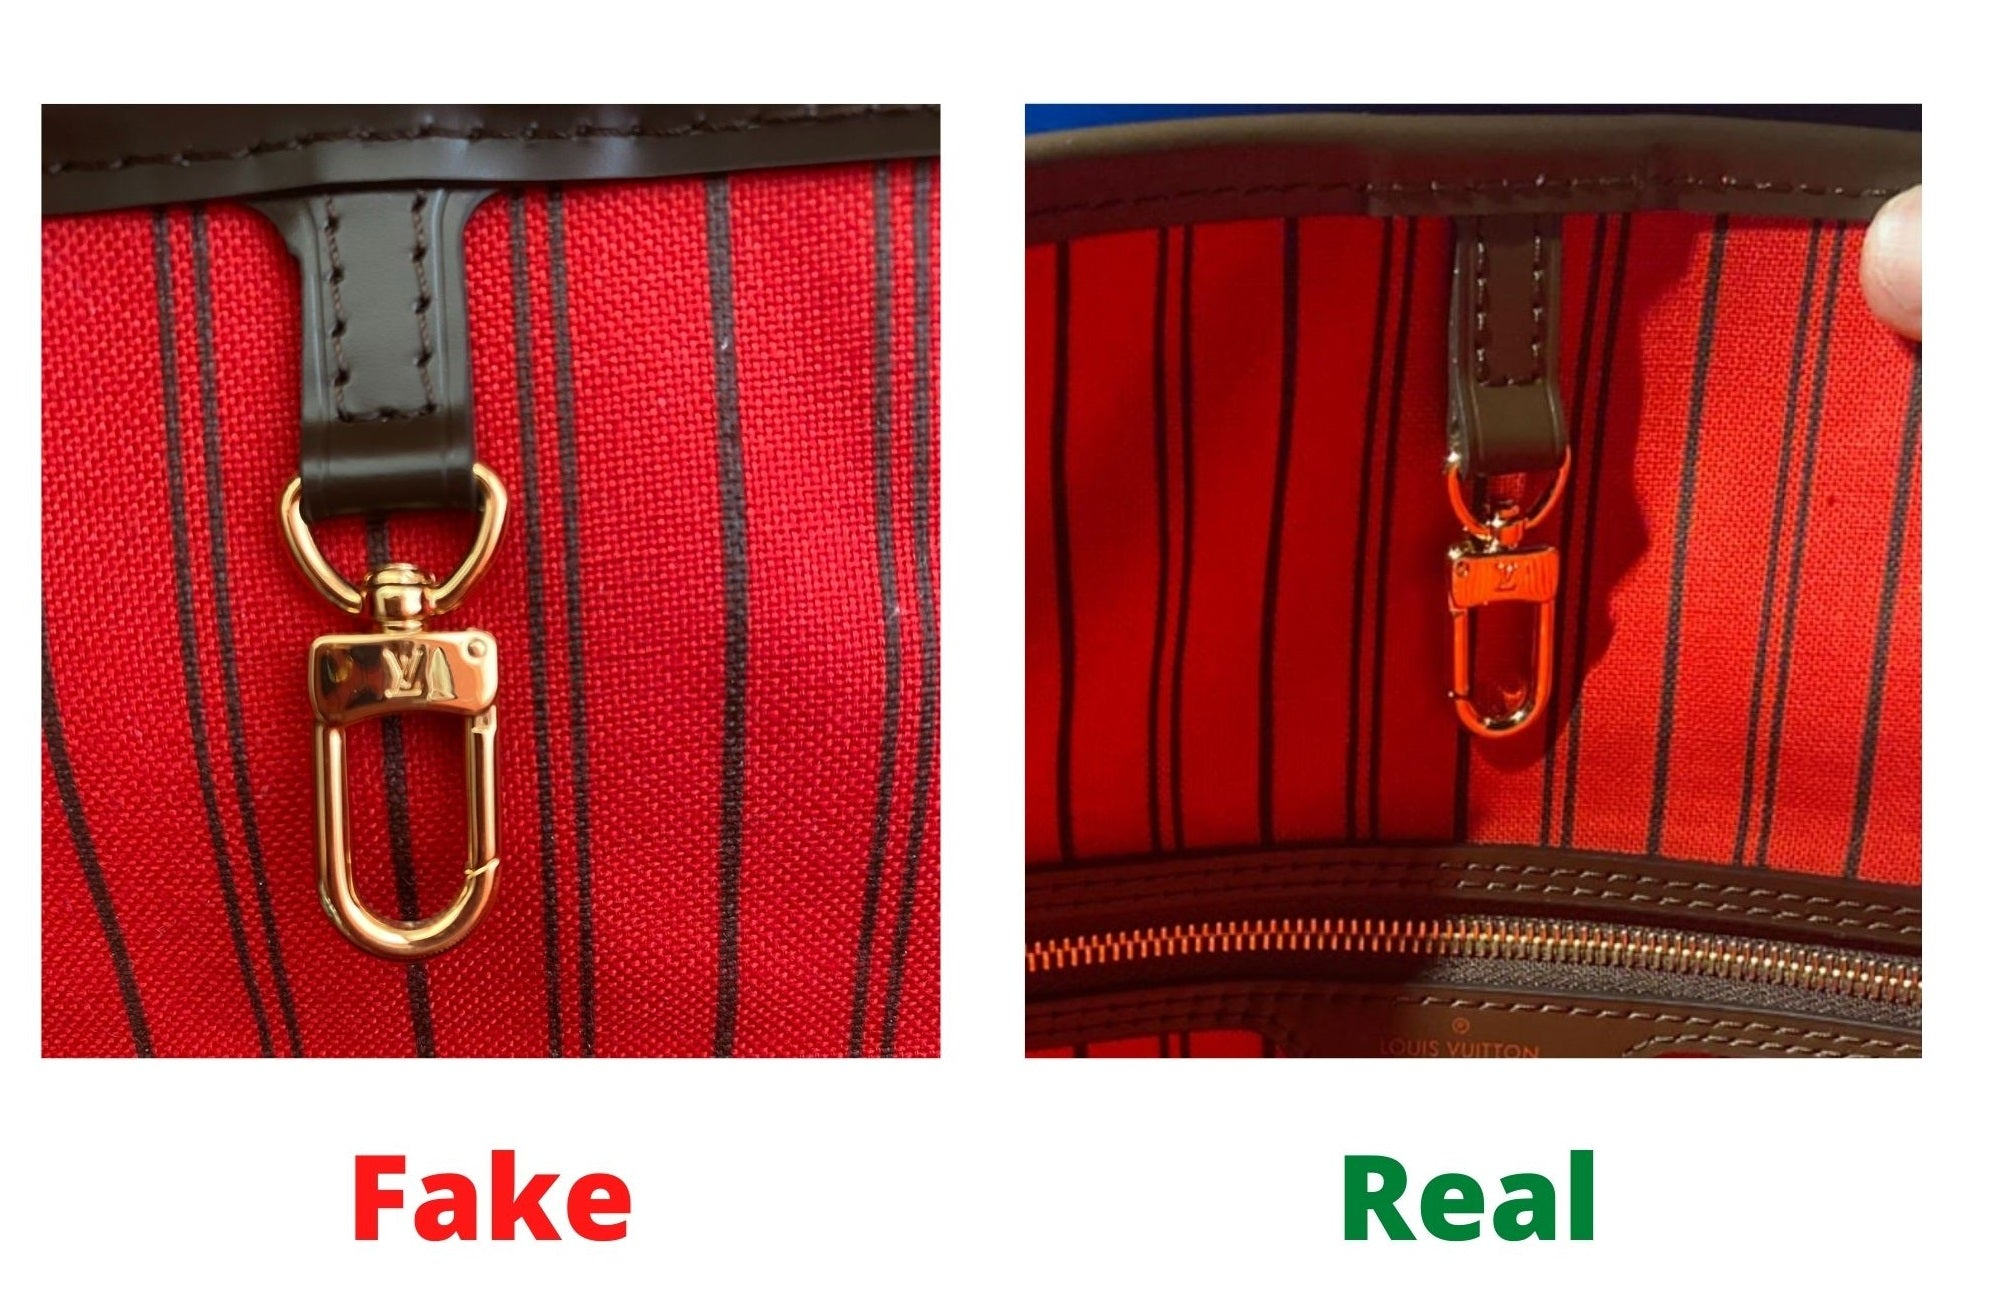 Fake Louis Vuitton Neverfull vs Real: Important Details You Should Definitely Pay Attention To (With Photo Examples) meverfull damier ebene fake vs real clasp